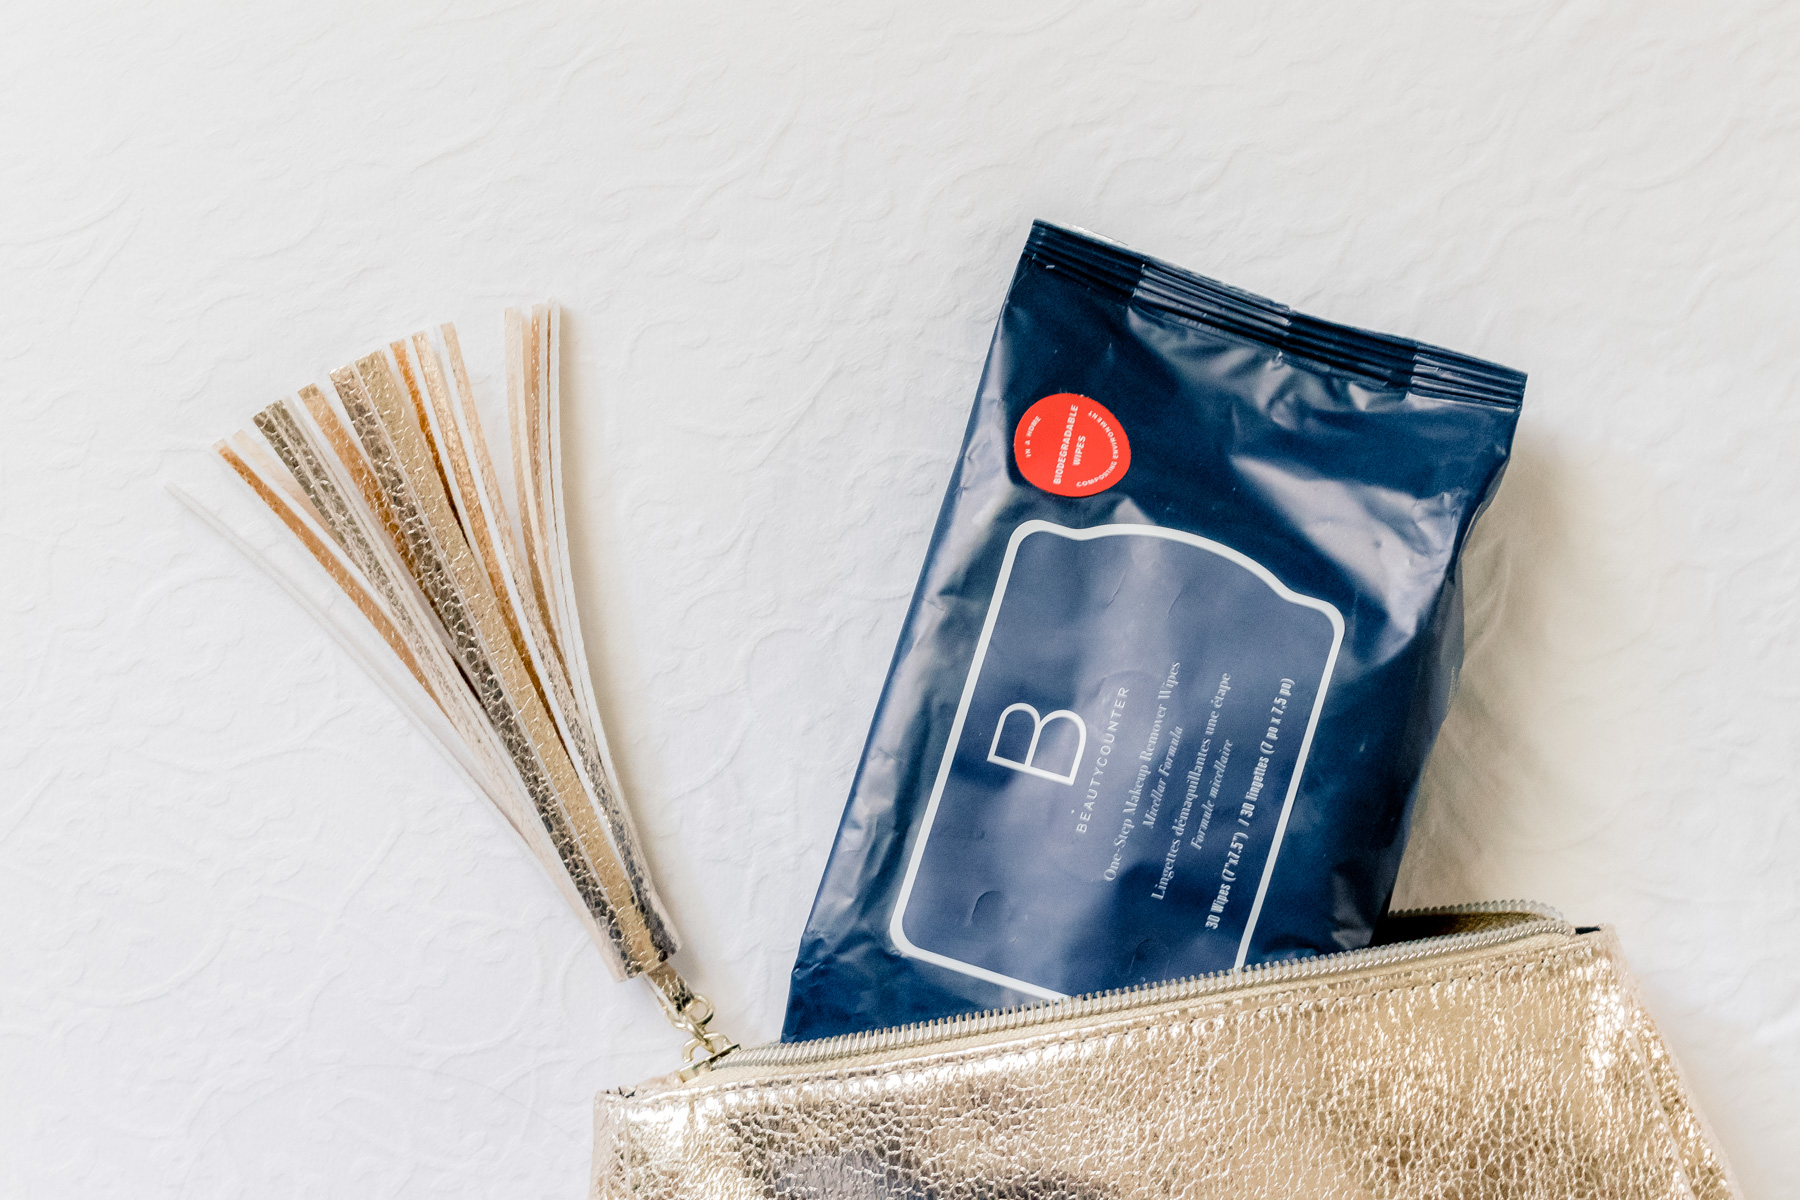 Beautycounter makeup removing wipes in a gold makeup bag